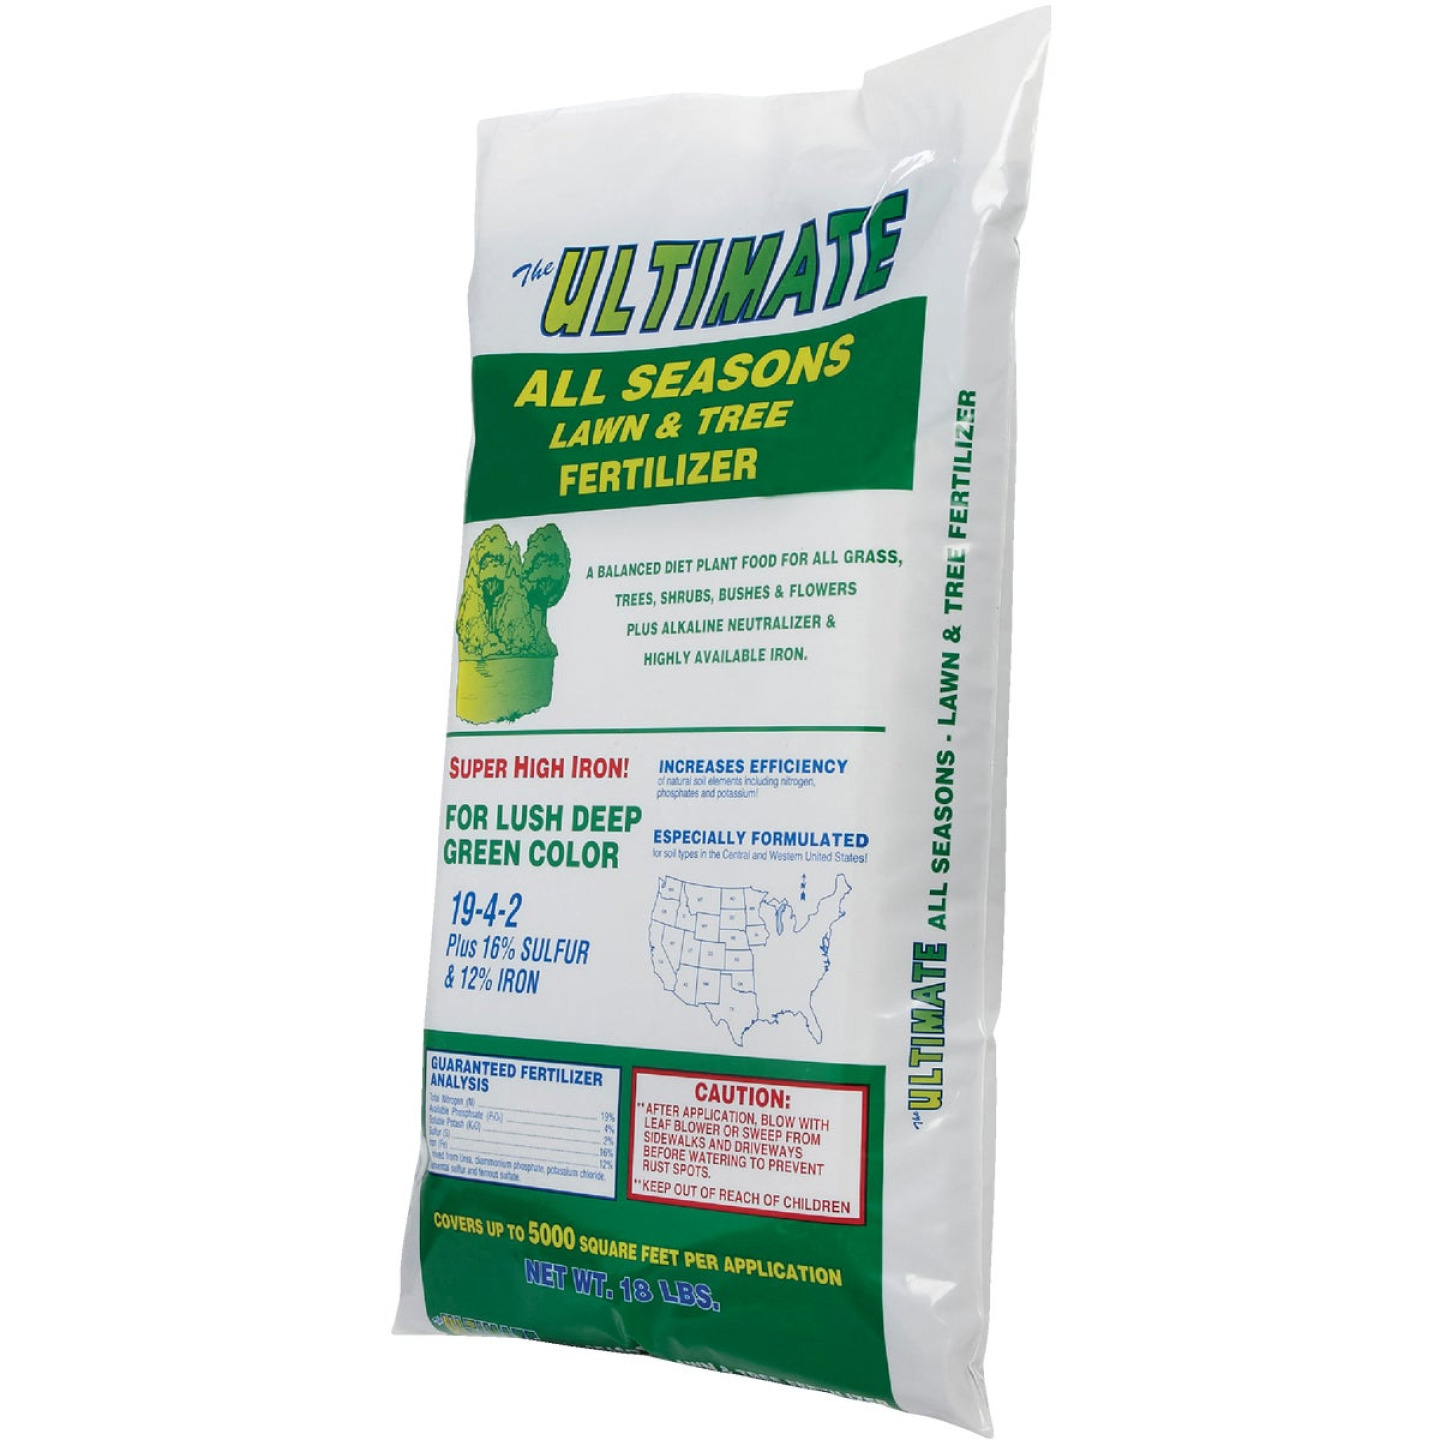 Ultimate 18 Lb. 5000 Sq. Ft. 19-4-2 All Seasons All Purpose Fertilizer Image 3